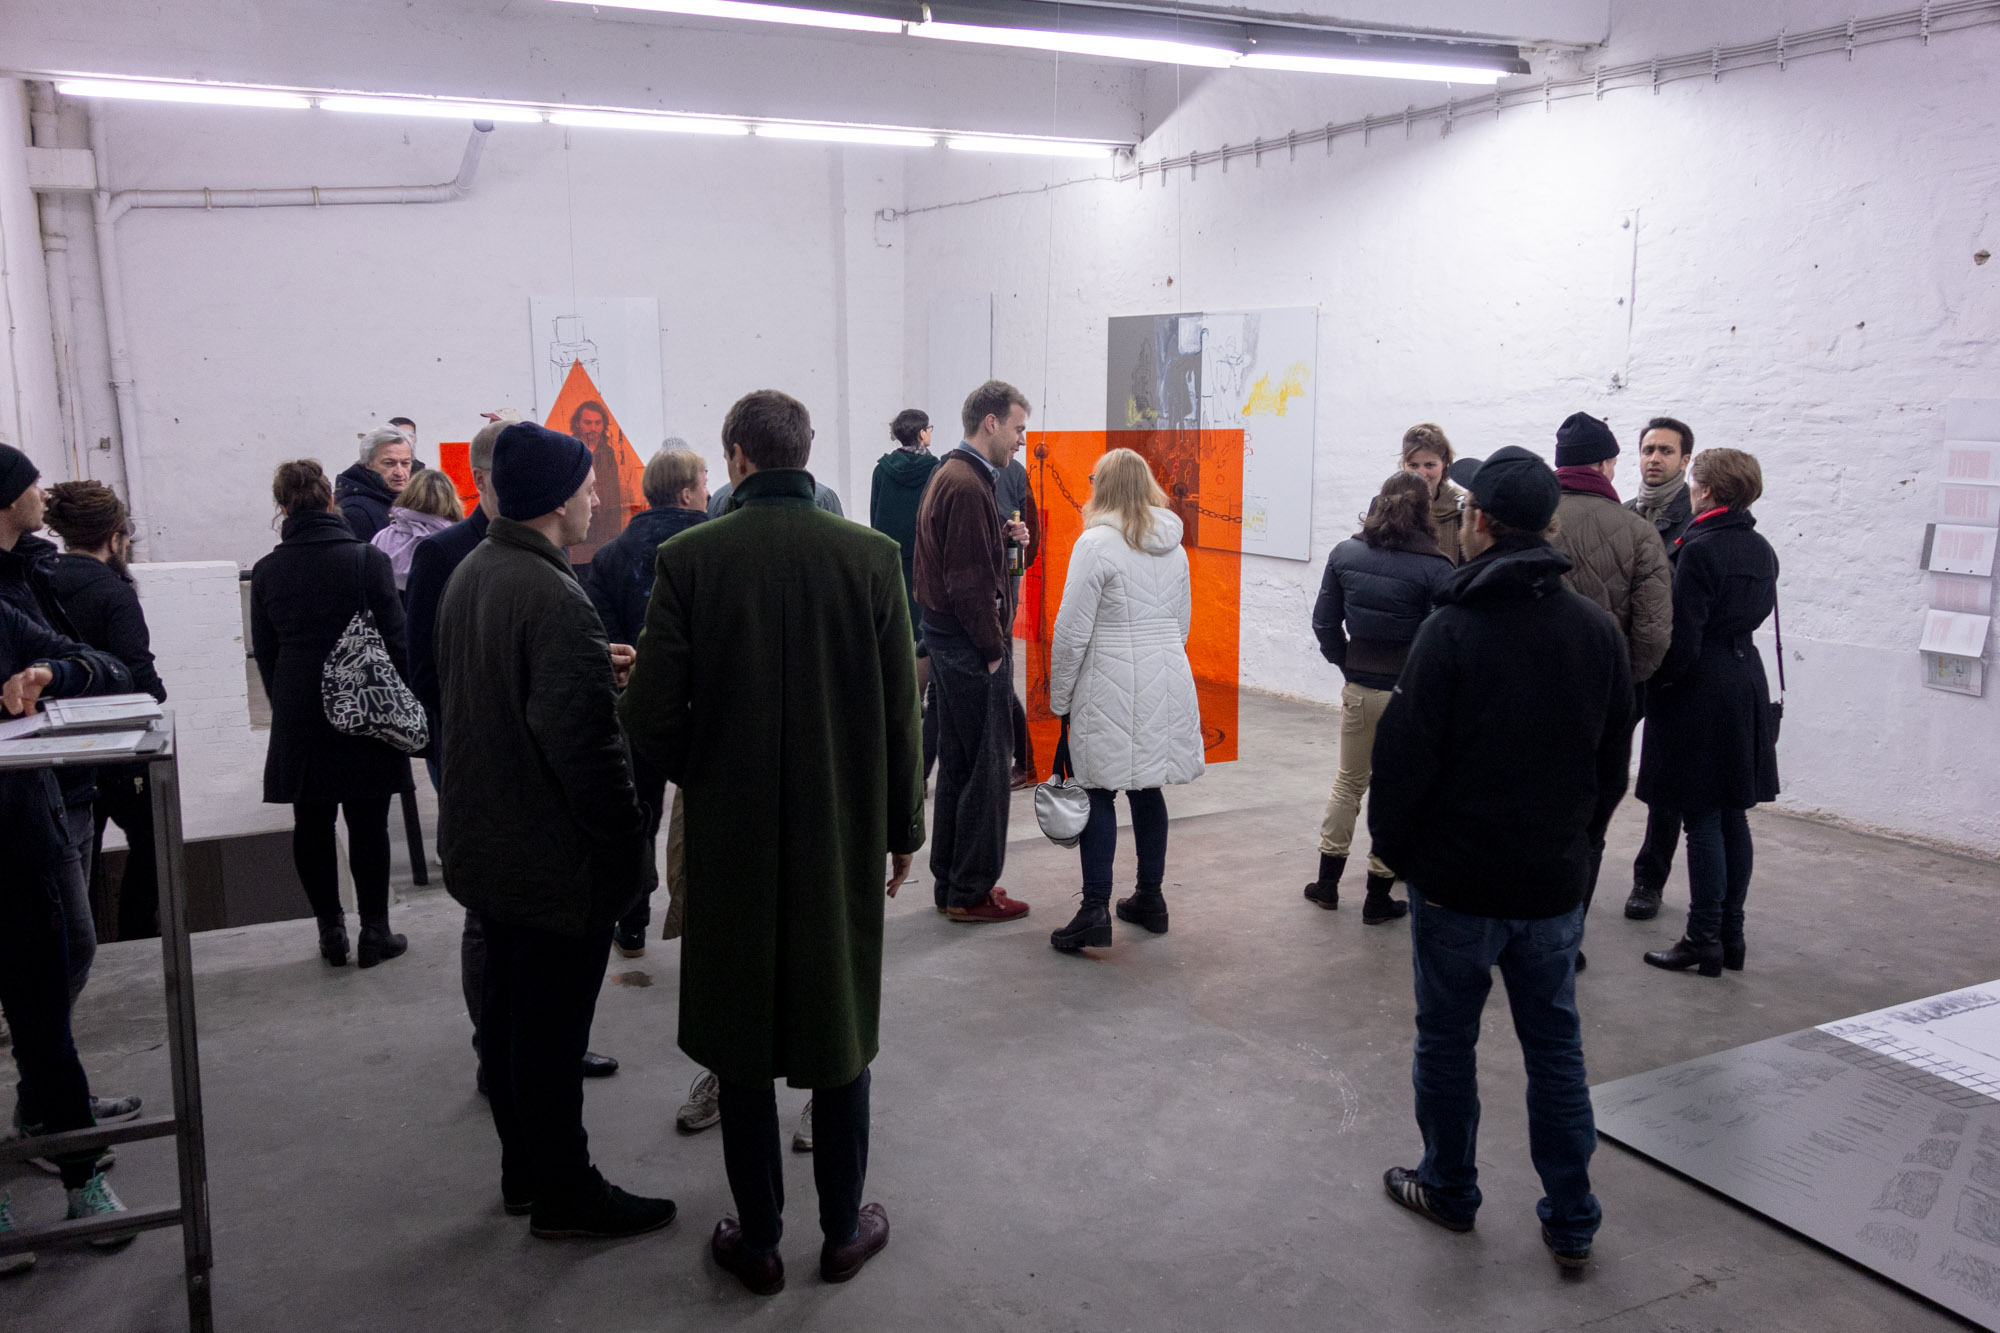 COURTROOM by MAXIMILIANE BAUMGARTNER + ALEX WISSEL - Opening - 17.11.2017 Studio For Artistic Research Maximiliane Baumgartner Alex Wissel Düsseldorf